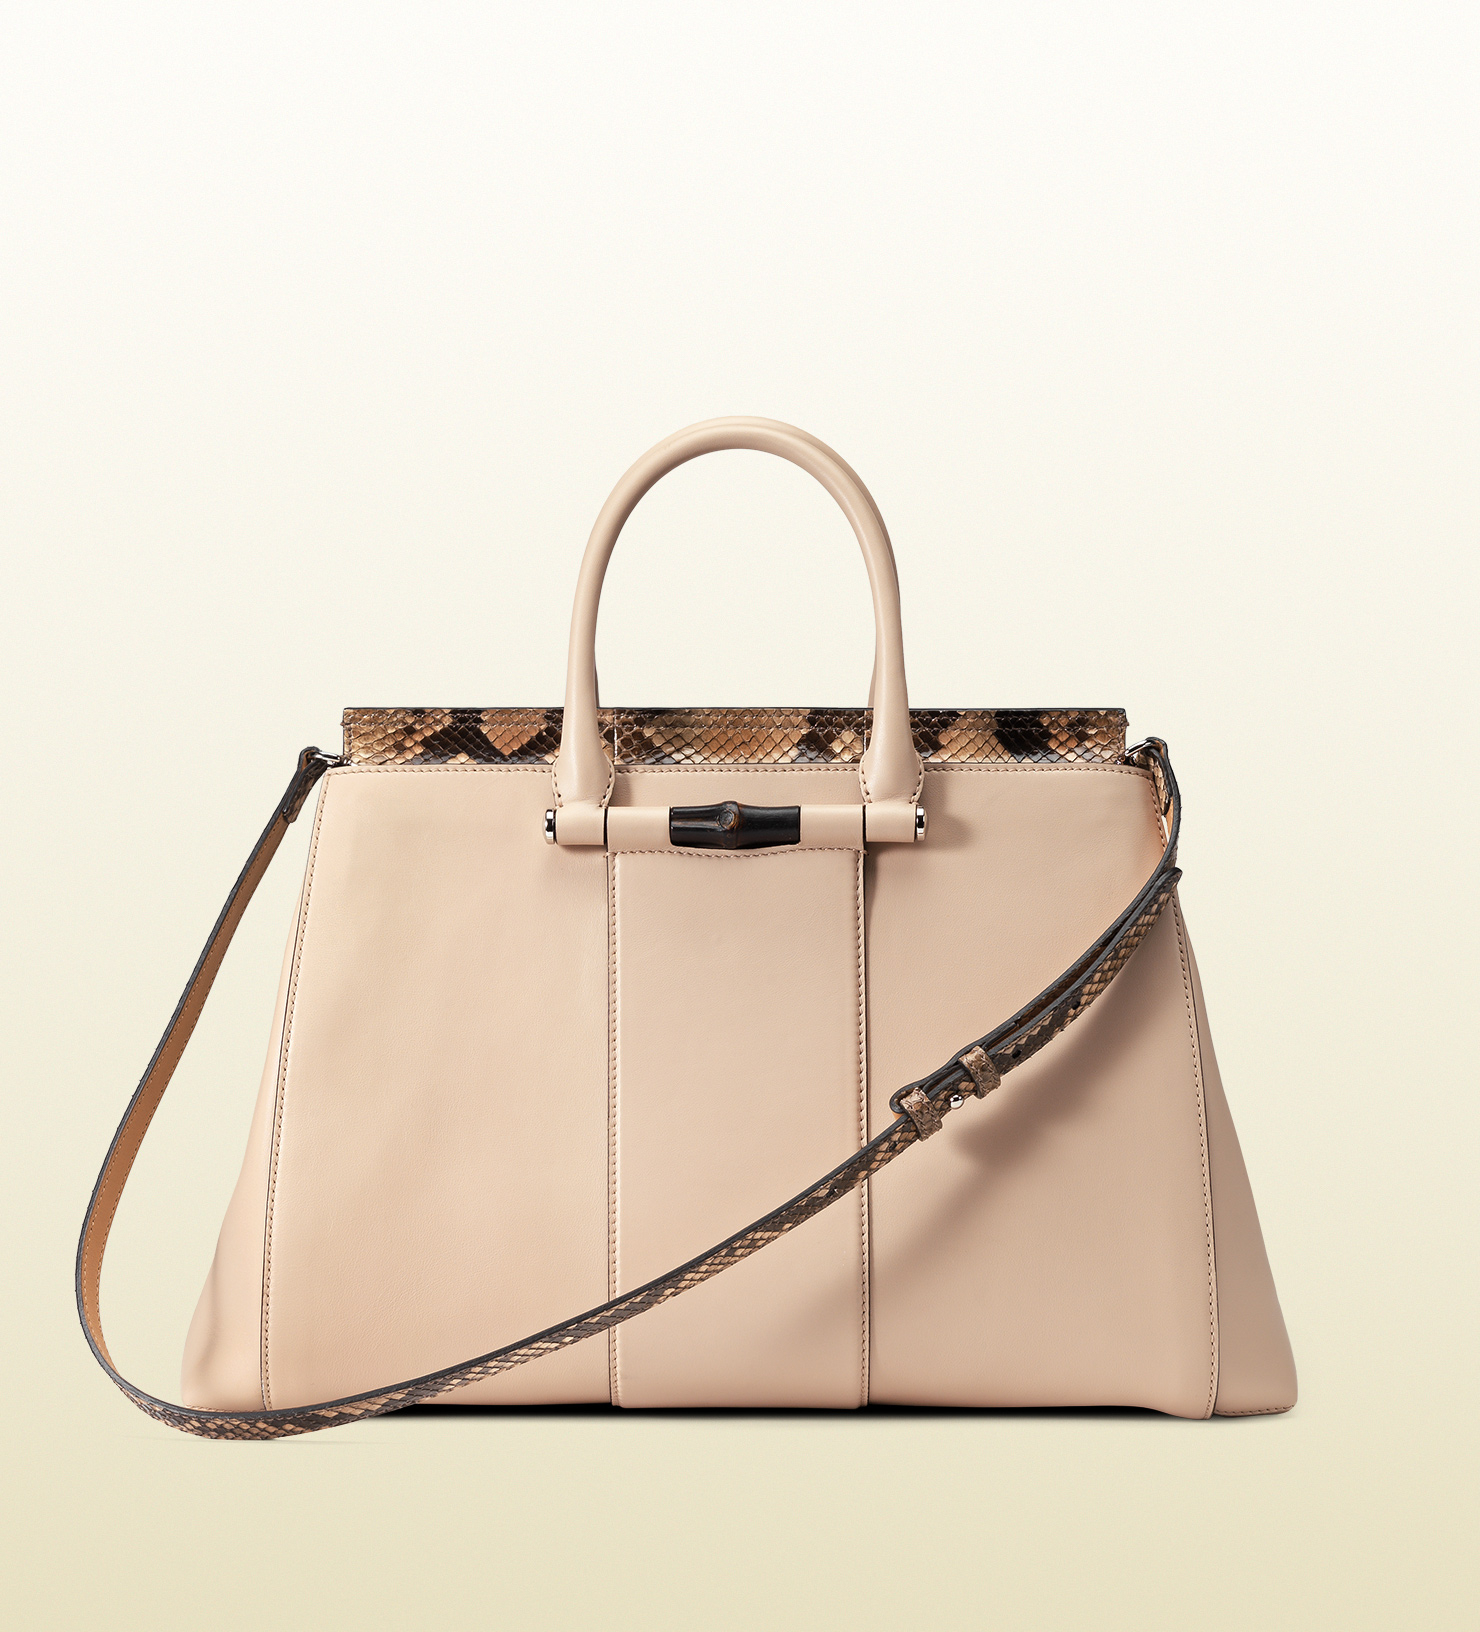 320644b4e5d9 Gucci Lady Bamboo Leather And Python Top Handle Bag in Natural - Lyst